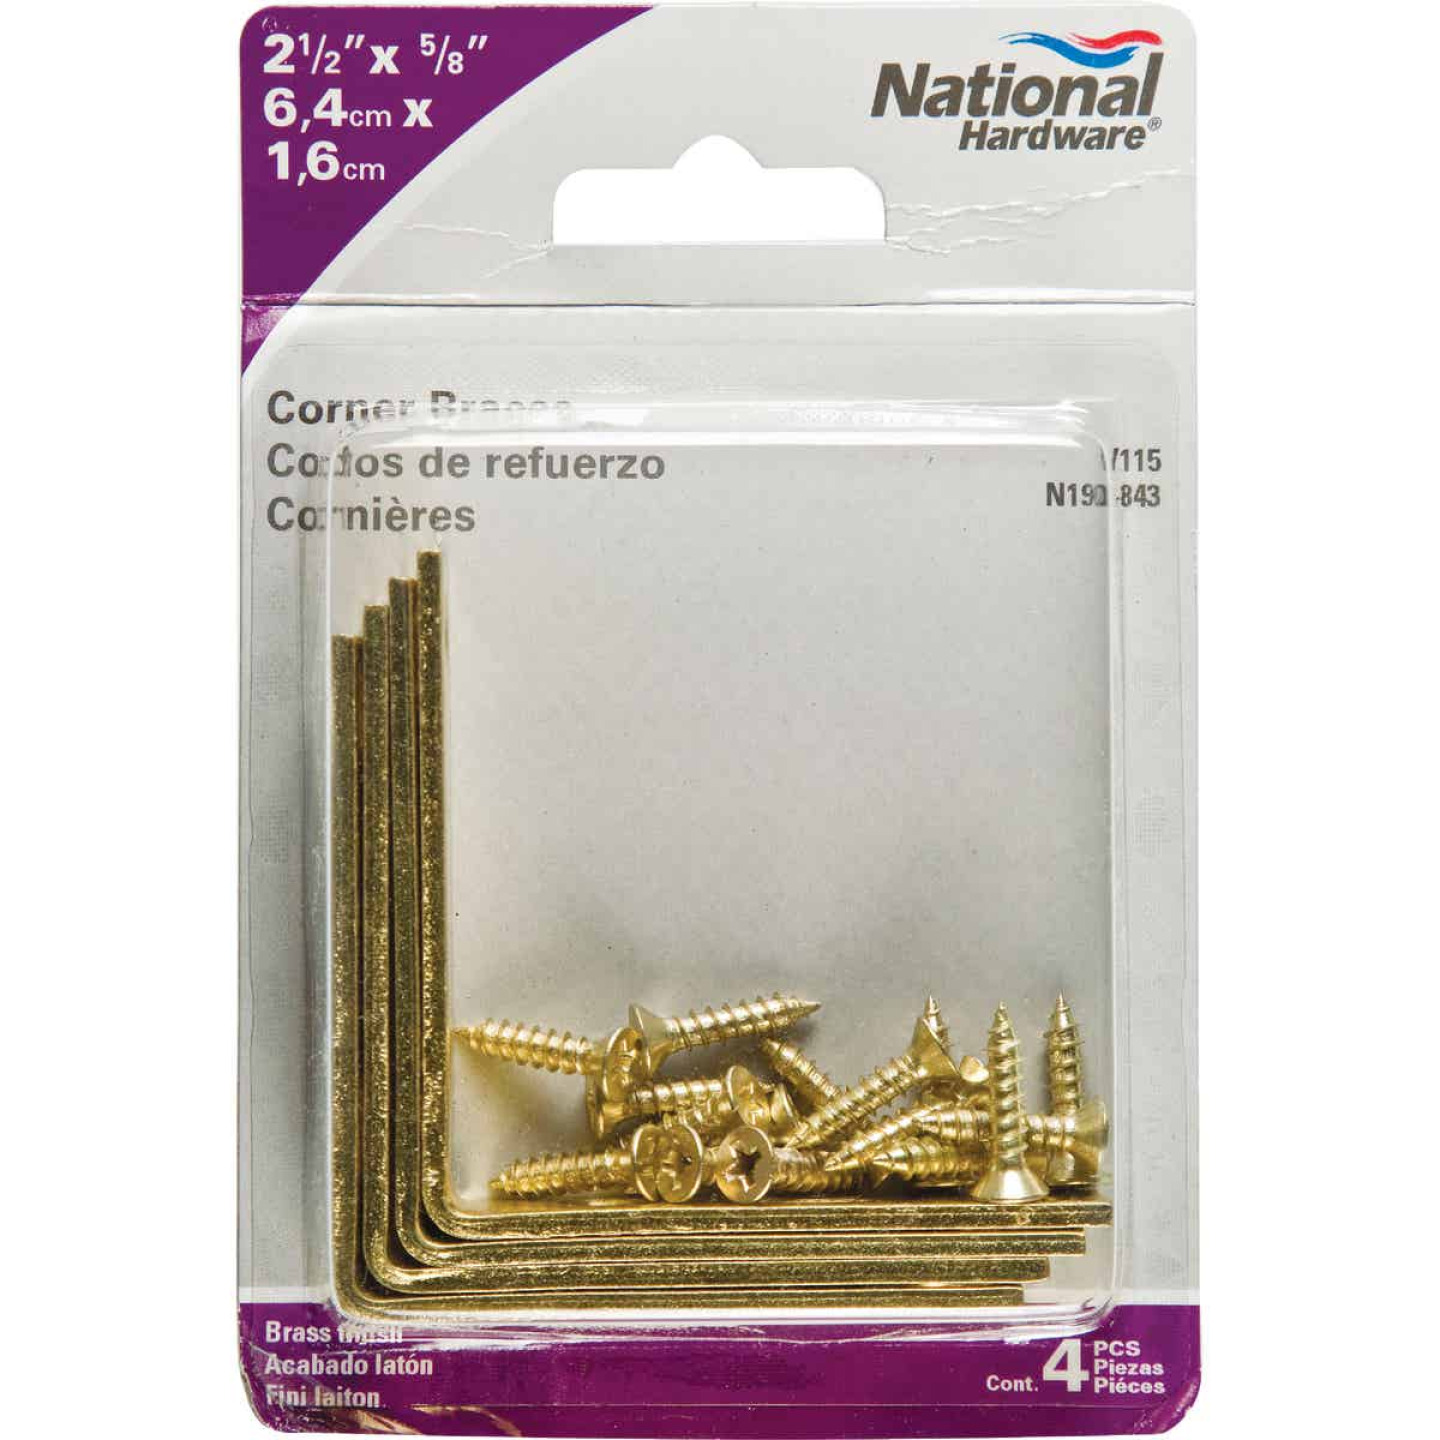 National Catalog V115 2-1/2 In. x 5/8 In. Brass Steel Corner Brace (4-Count) Image 2